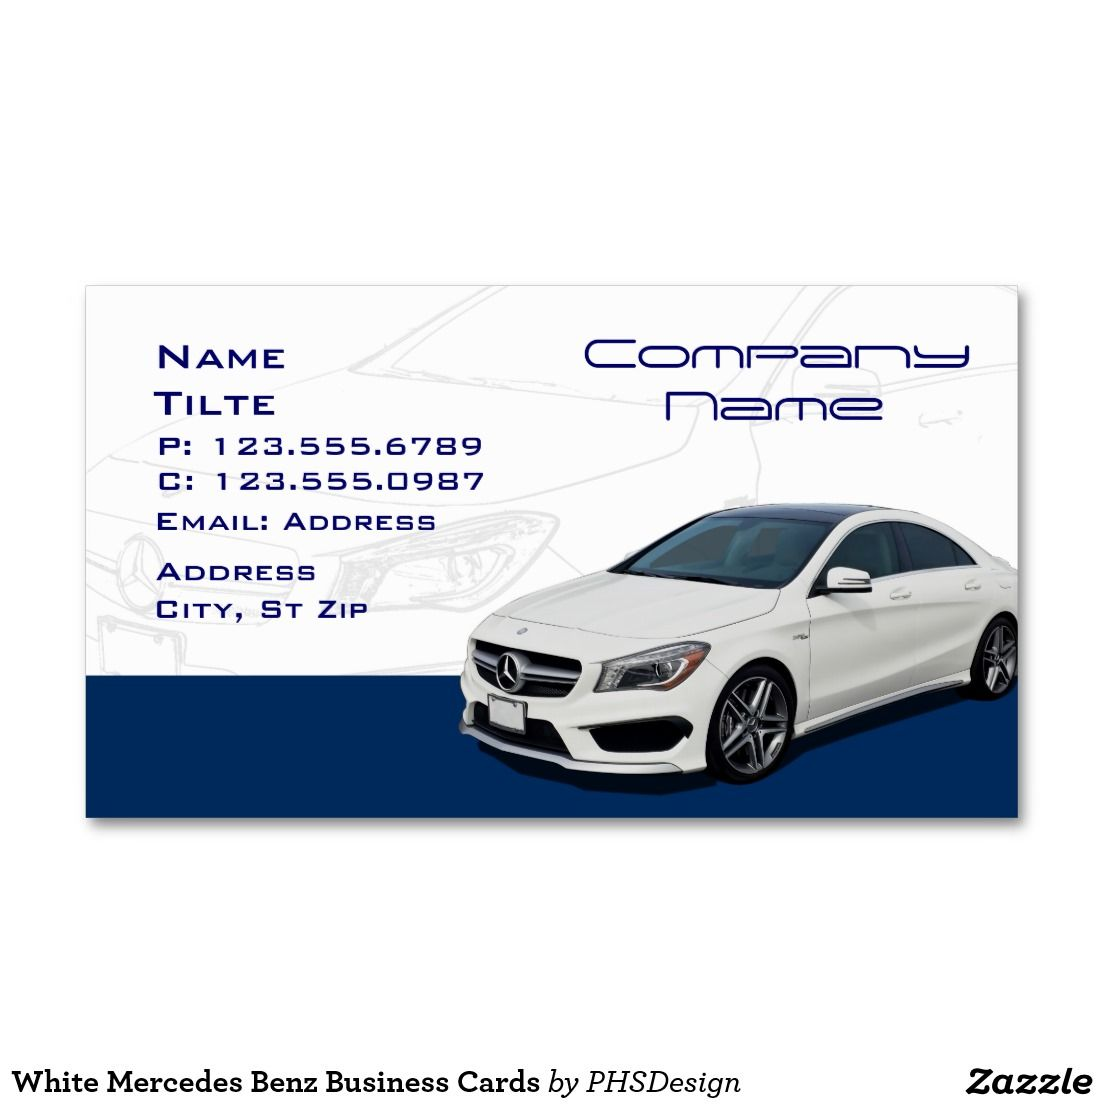 White Mercedes Benz Business Cards Business Card Templates